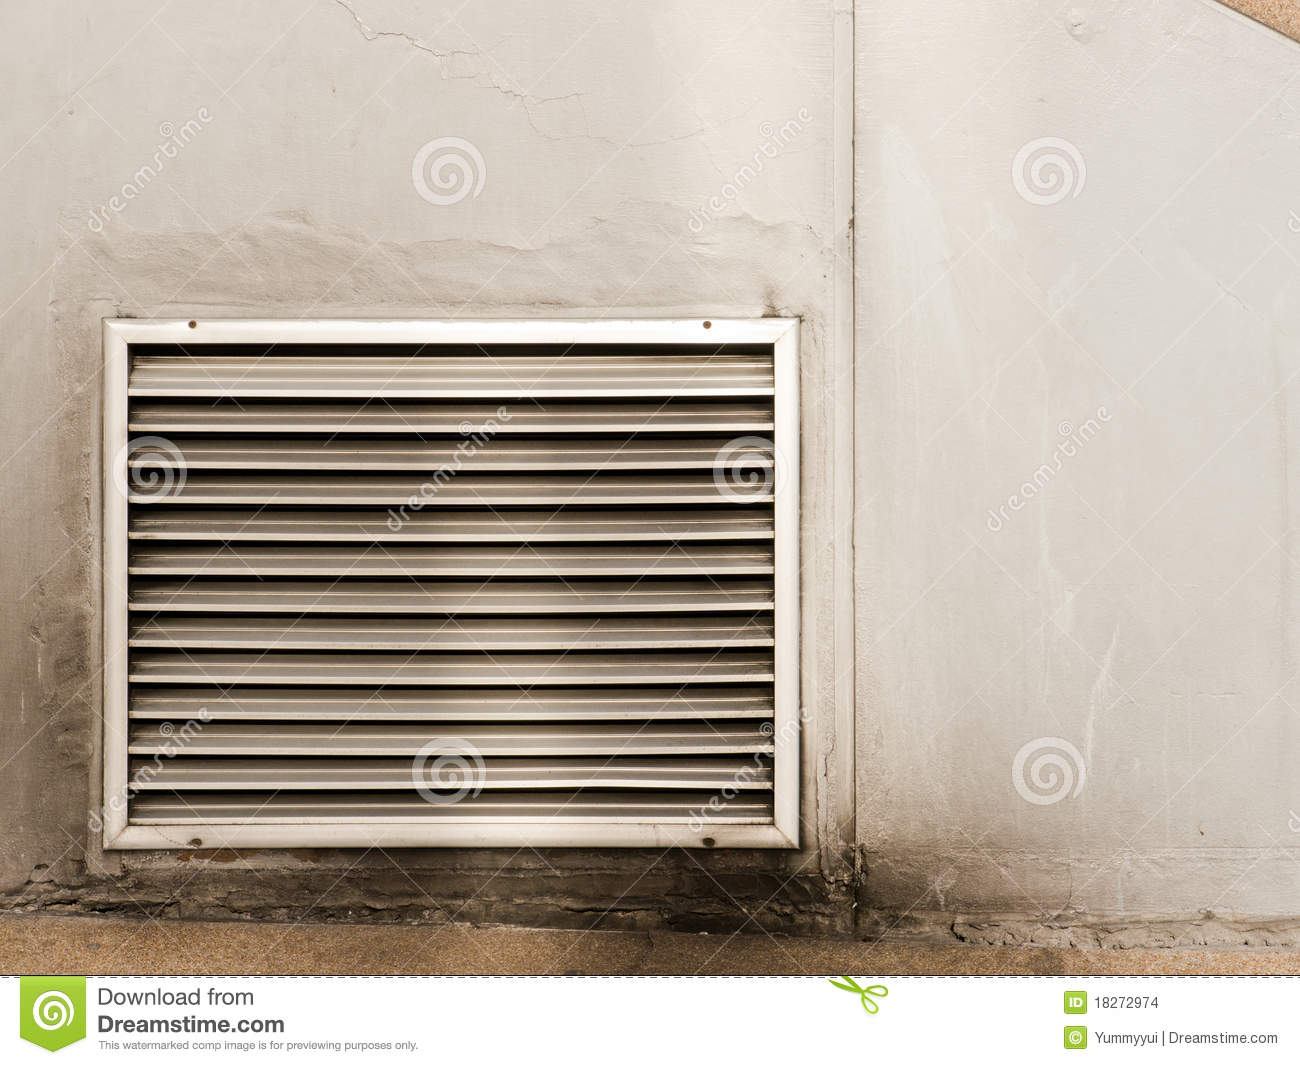 #84A823 Wall Air Vent Stock Images Image: 18272974 Highly Rated 4589 Hvac Wall Vents wallpapers with 1300x1065 px on helpvideos.info - Air Conditioners, Air Coolers and more